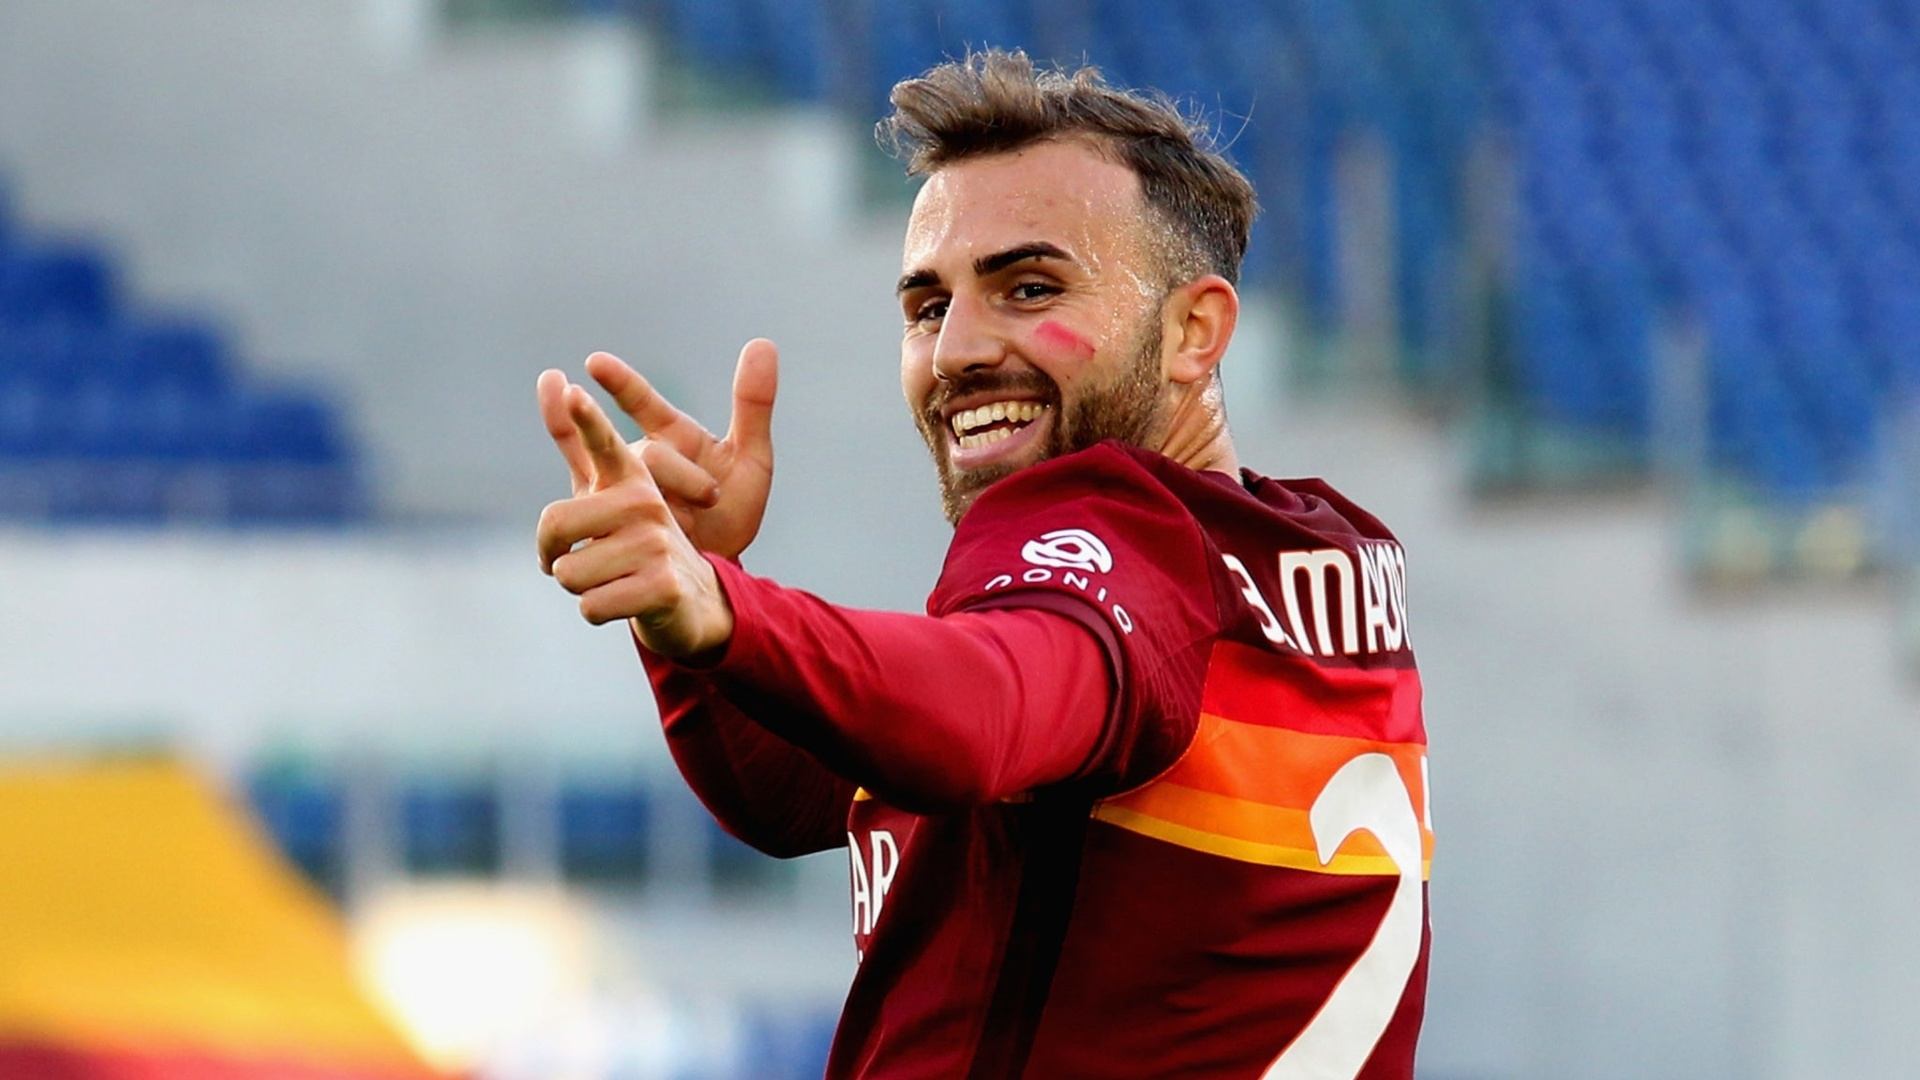 Borja Mayoral is coming to life in Italy